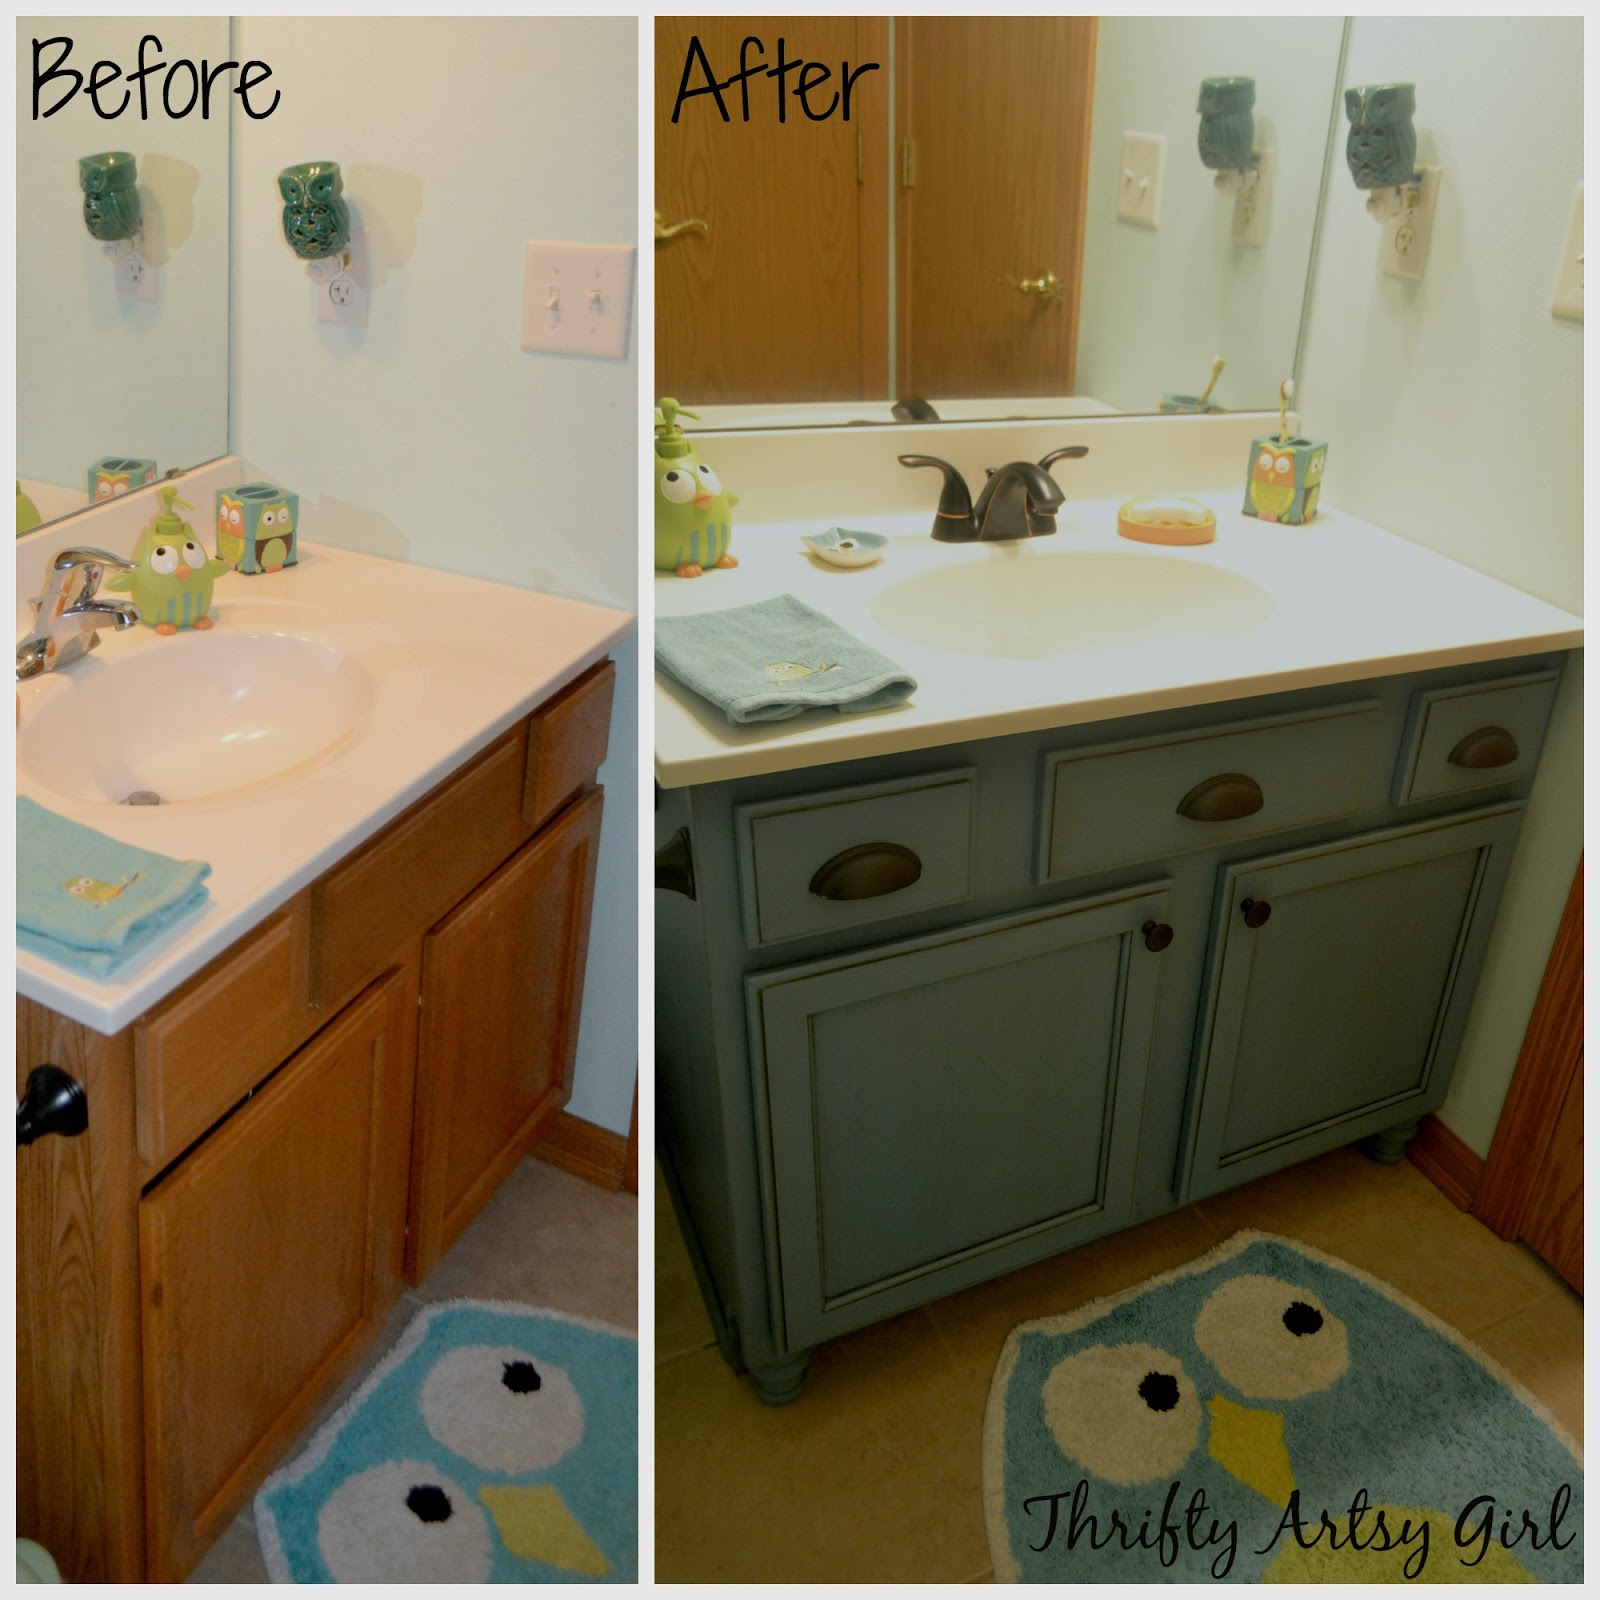 Thrifty Artsy Girl: Builders Grade Teal Bathroom Vanity